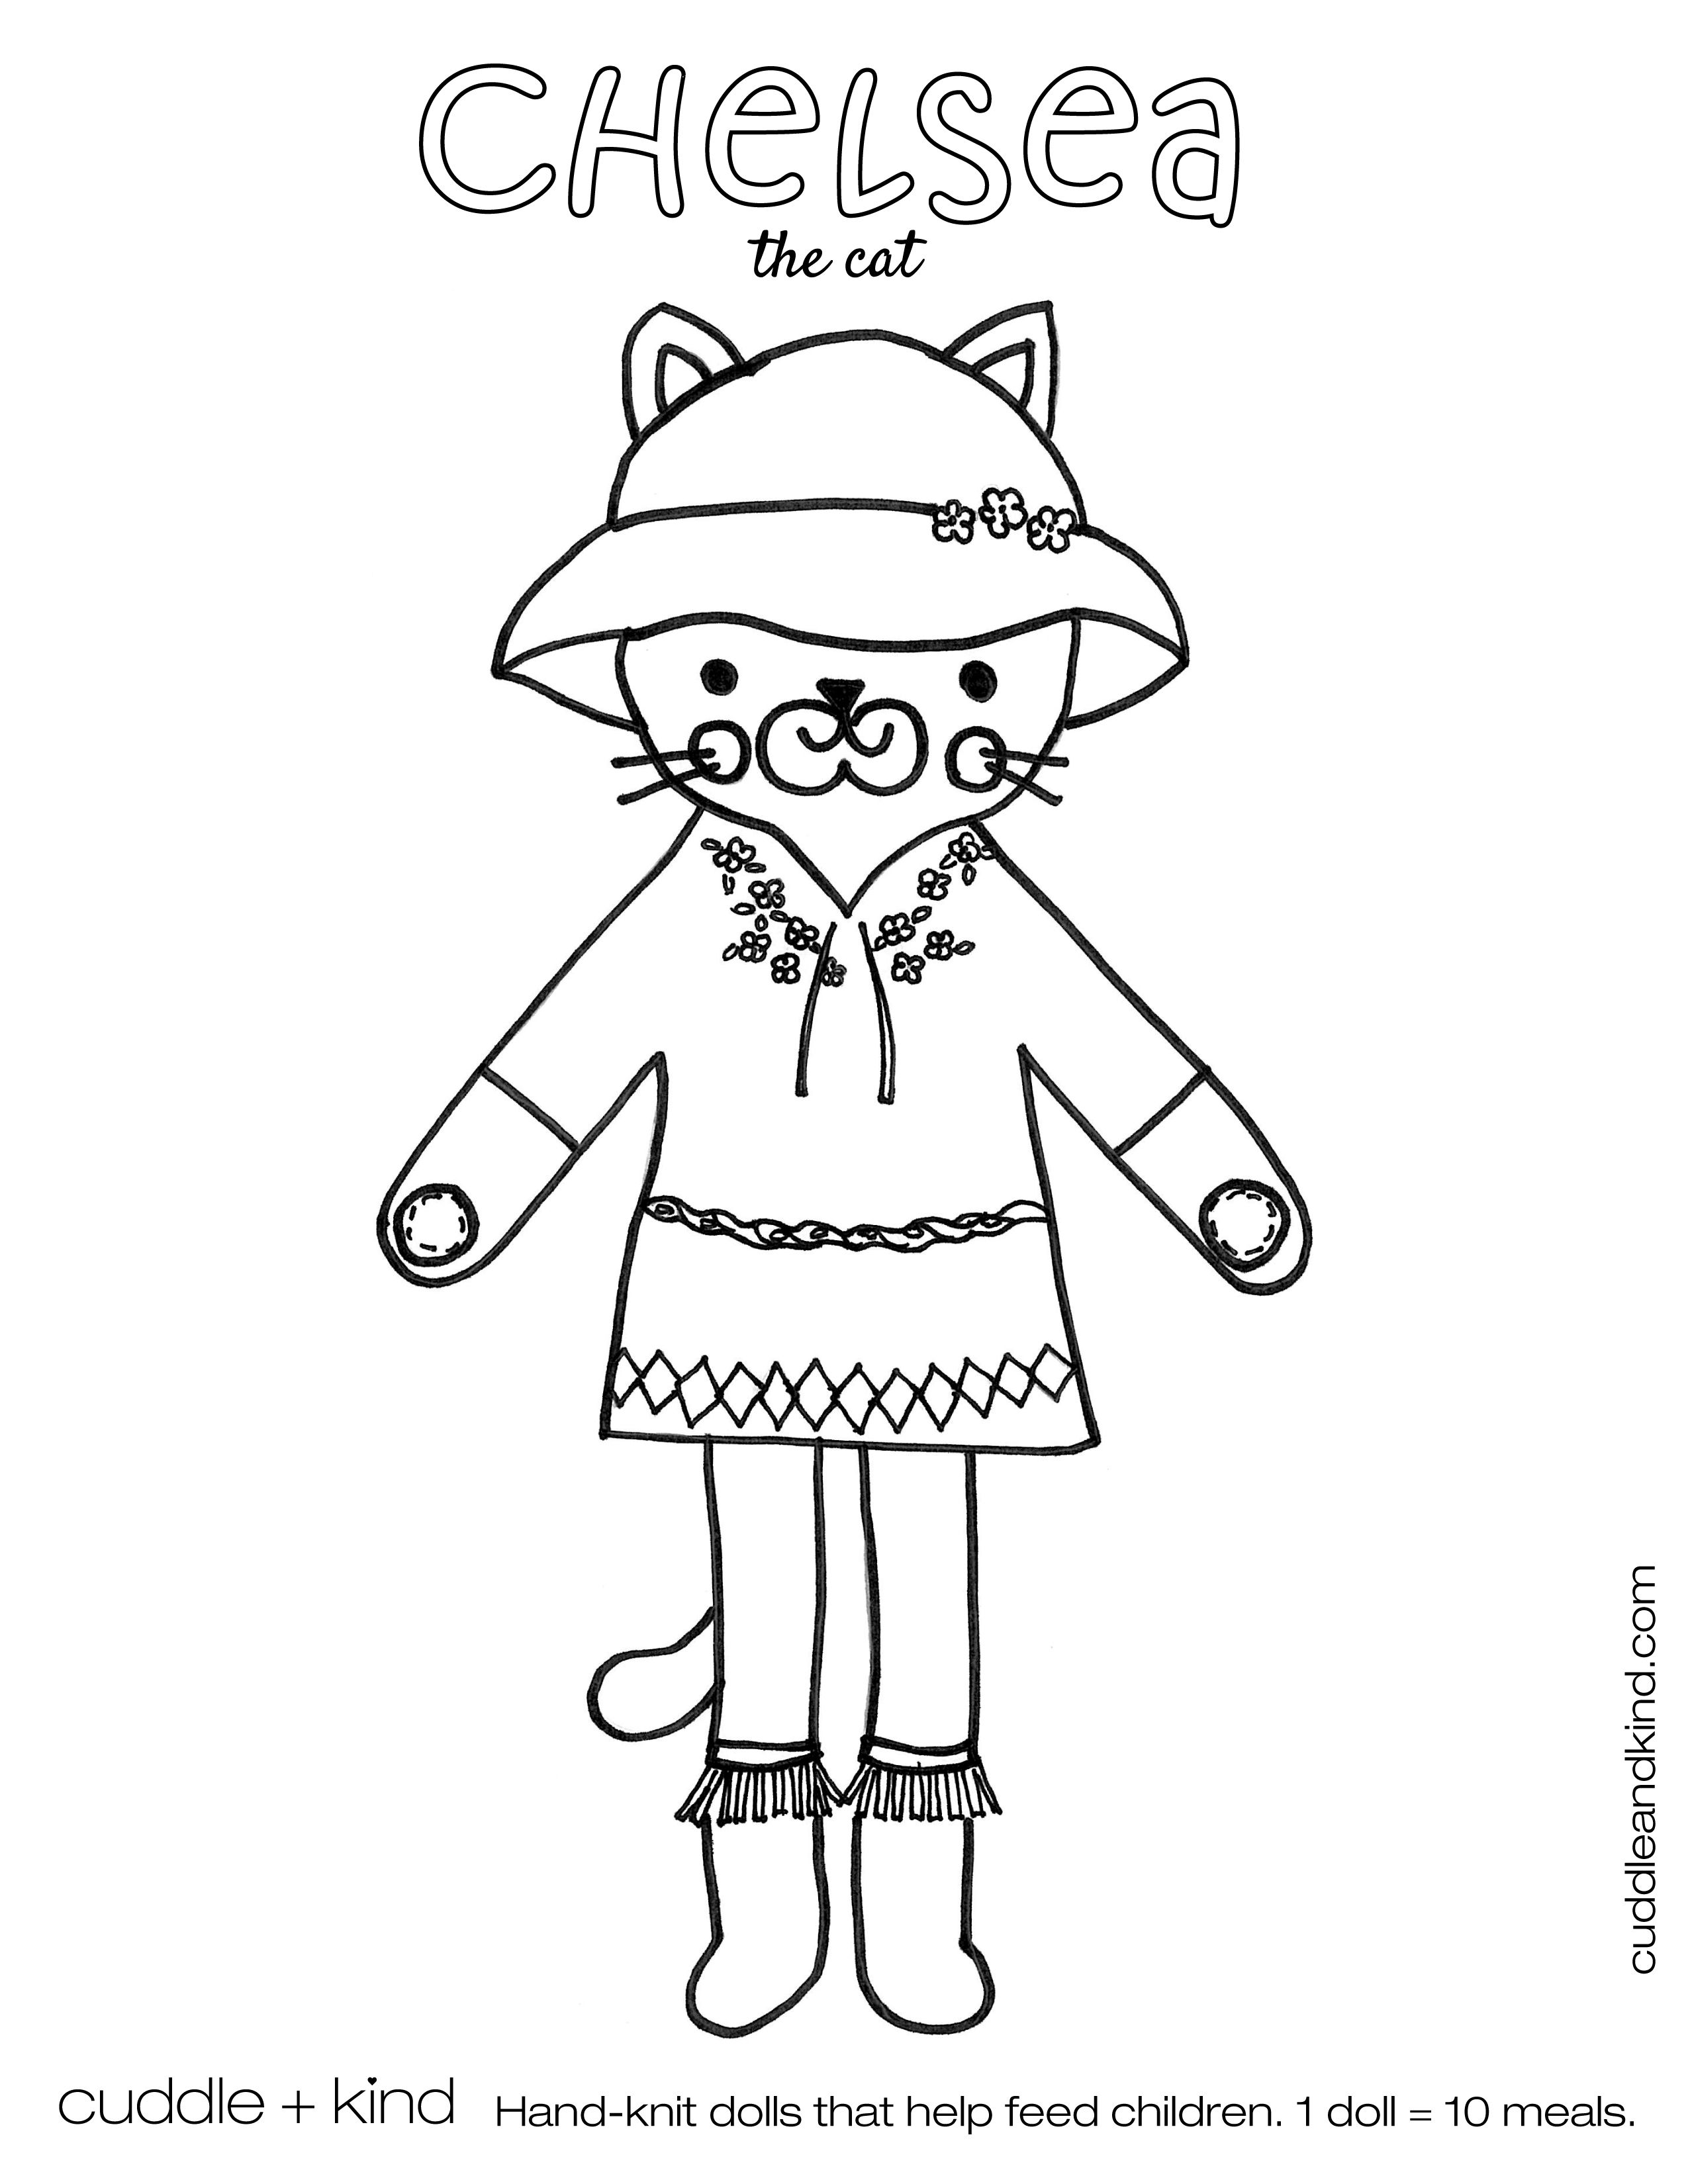 Cuddle Kind Chelsea The Cat Colouring Sheet Ddleandkind